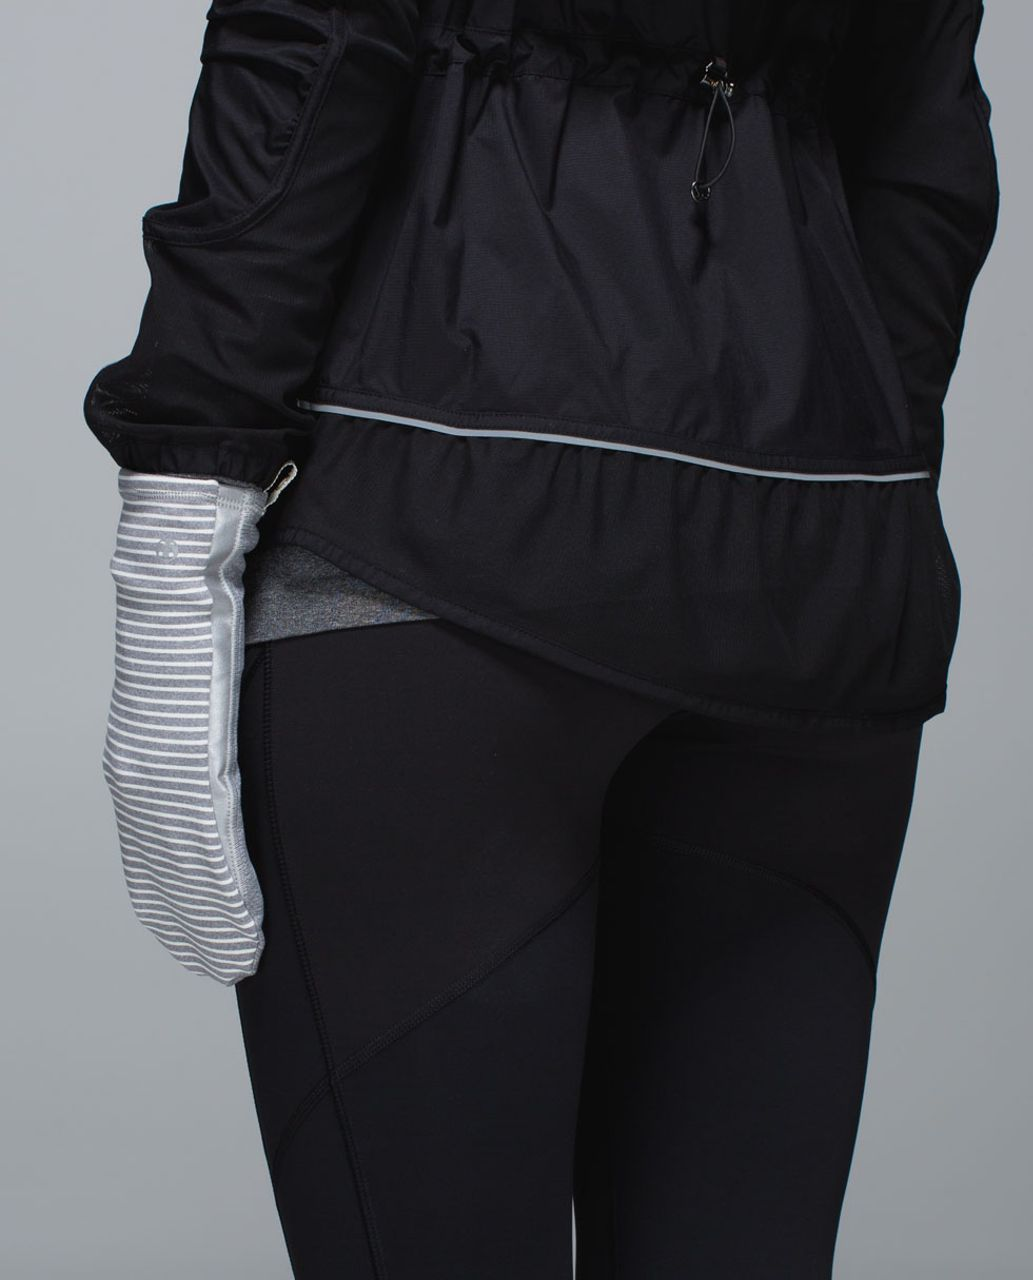 Lululemon Run With Me Mittens - Hyper Stripe Heathered Slate Ghost / Heathered Slate / Heathered Slate